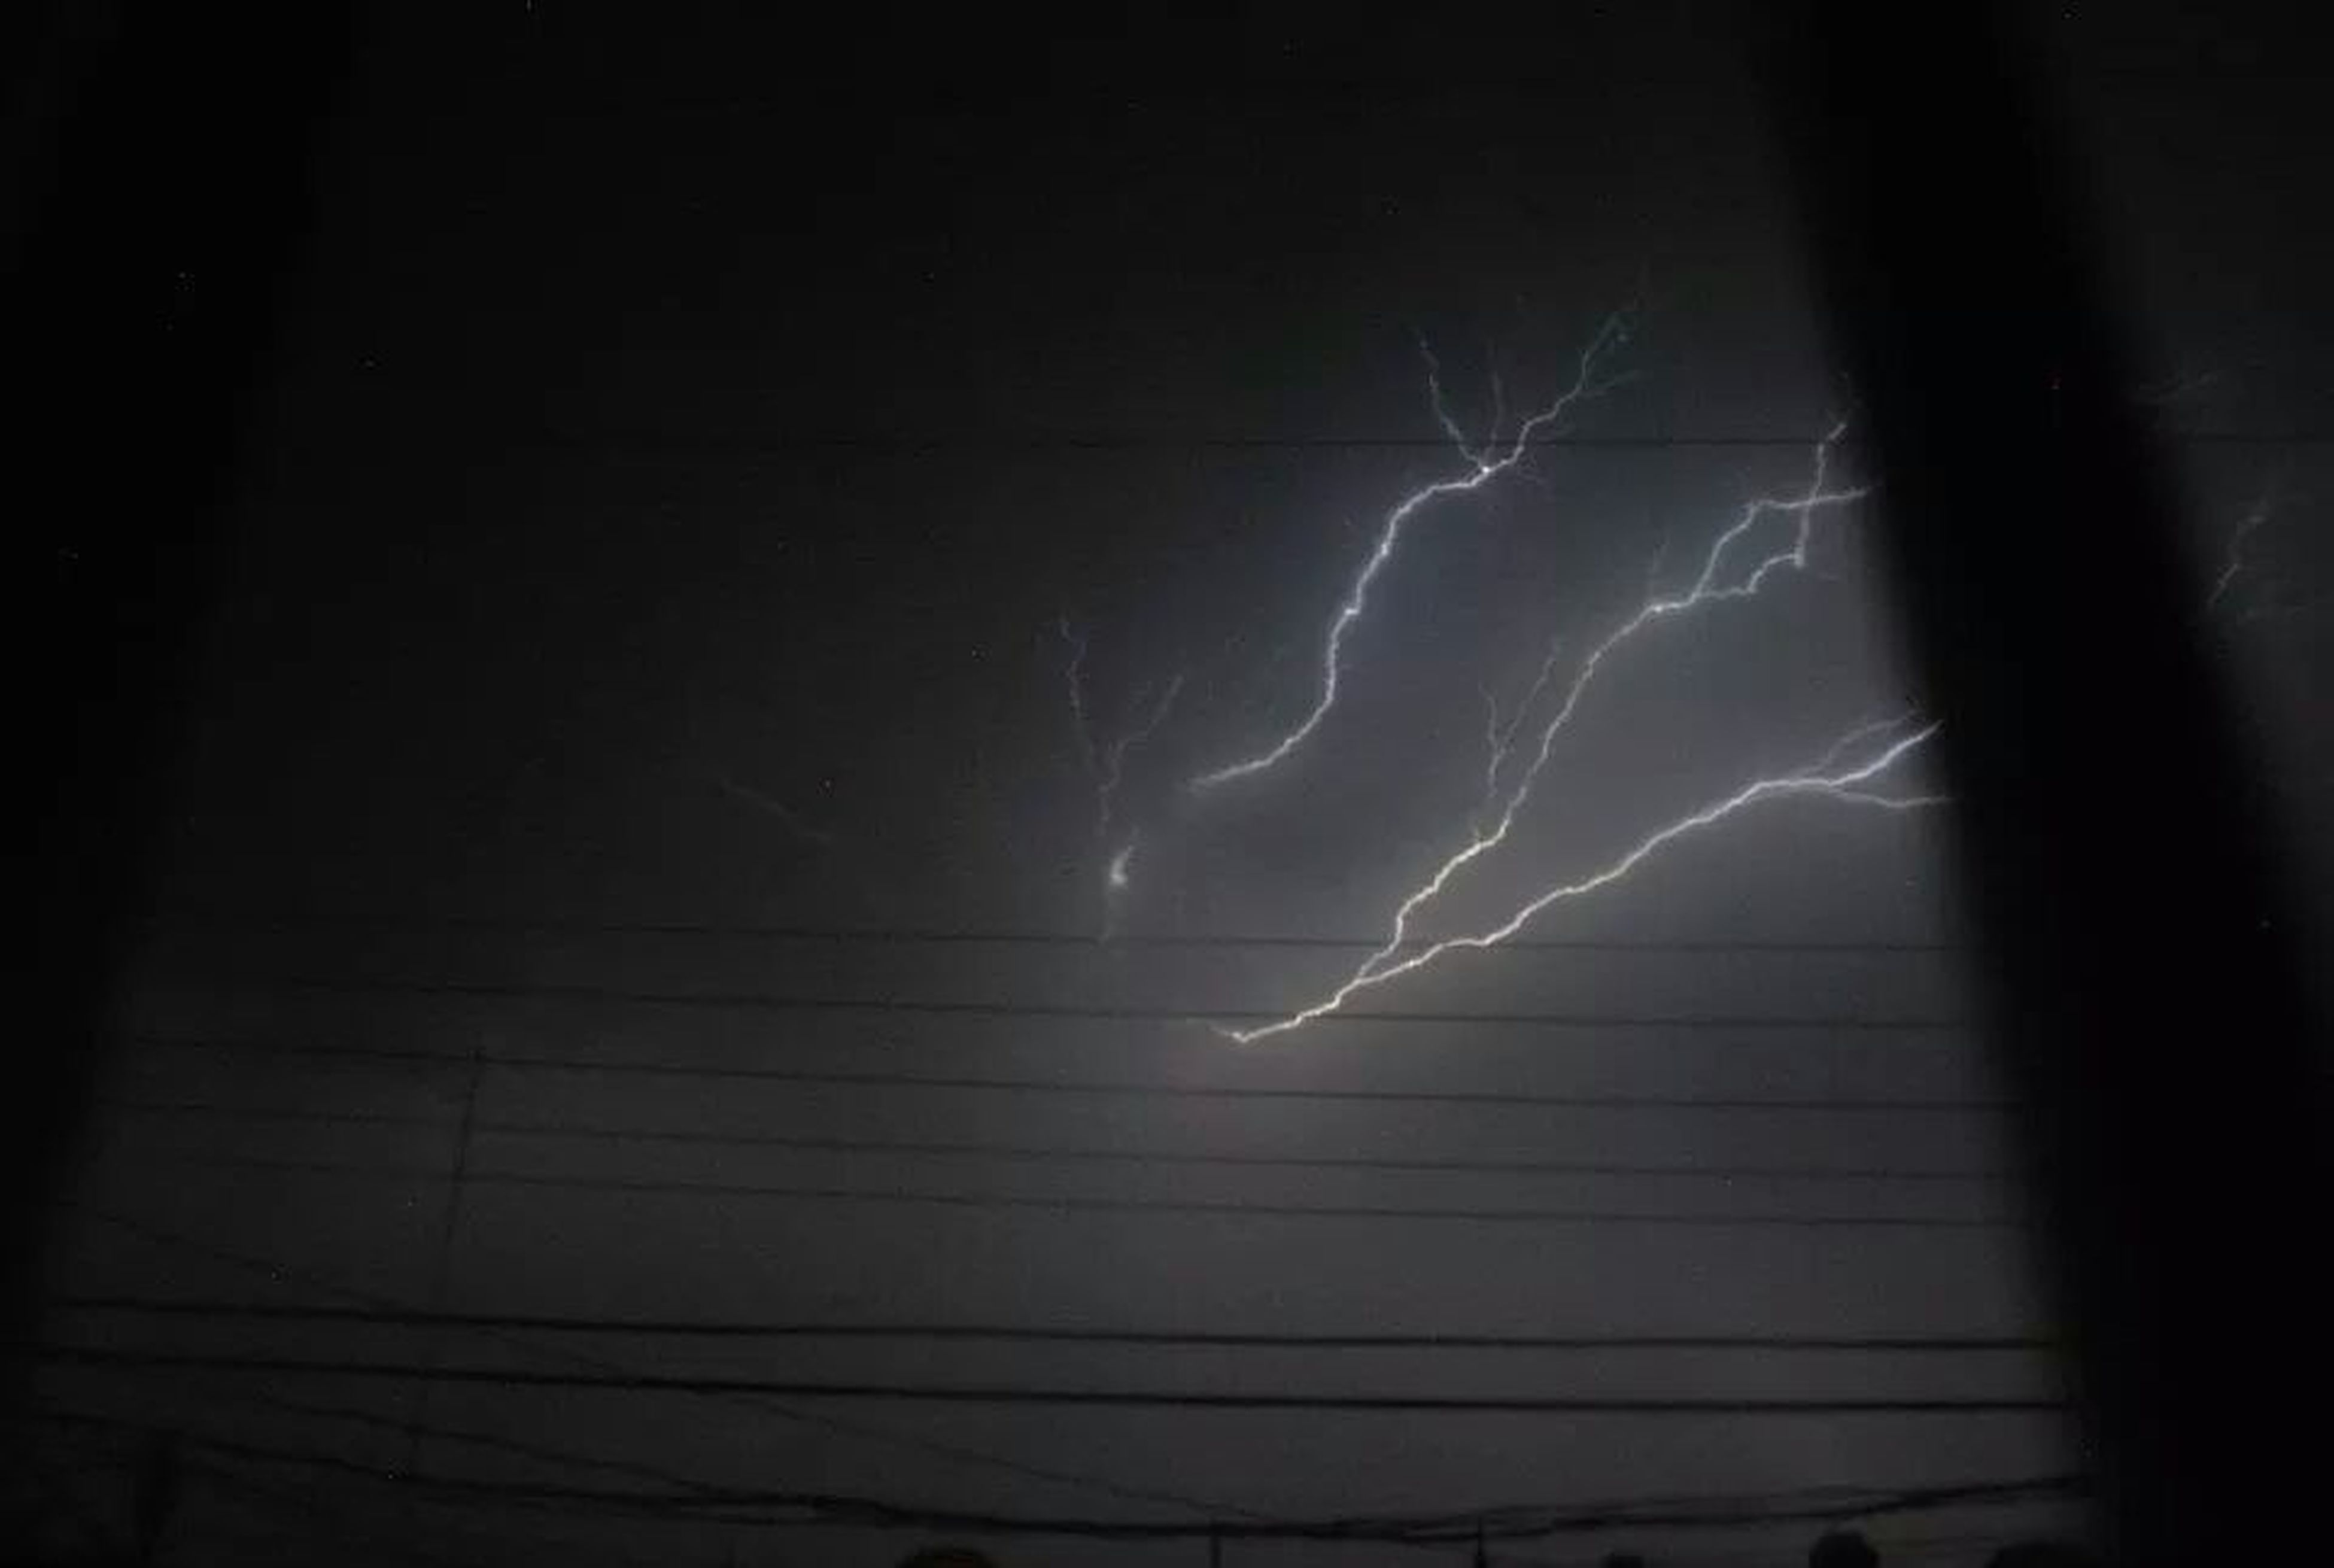 night, sky, silhouette, scenics, low angle view, lightning, nature, power in nature, beauty in nature, dark, tranquility, tranquil scene, weather, illuminated, dusk, electricity, outdoors, thunderstorm, no people, cloud - sky